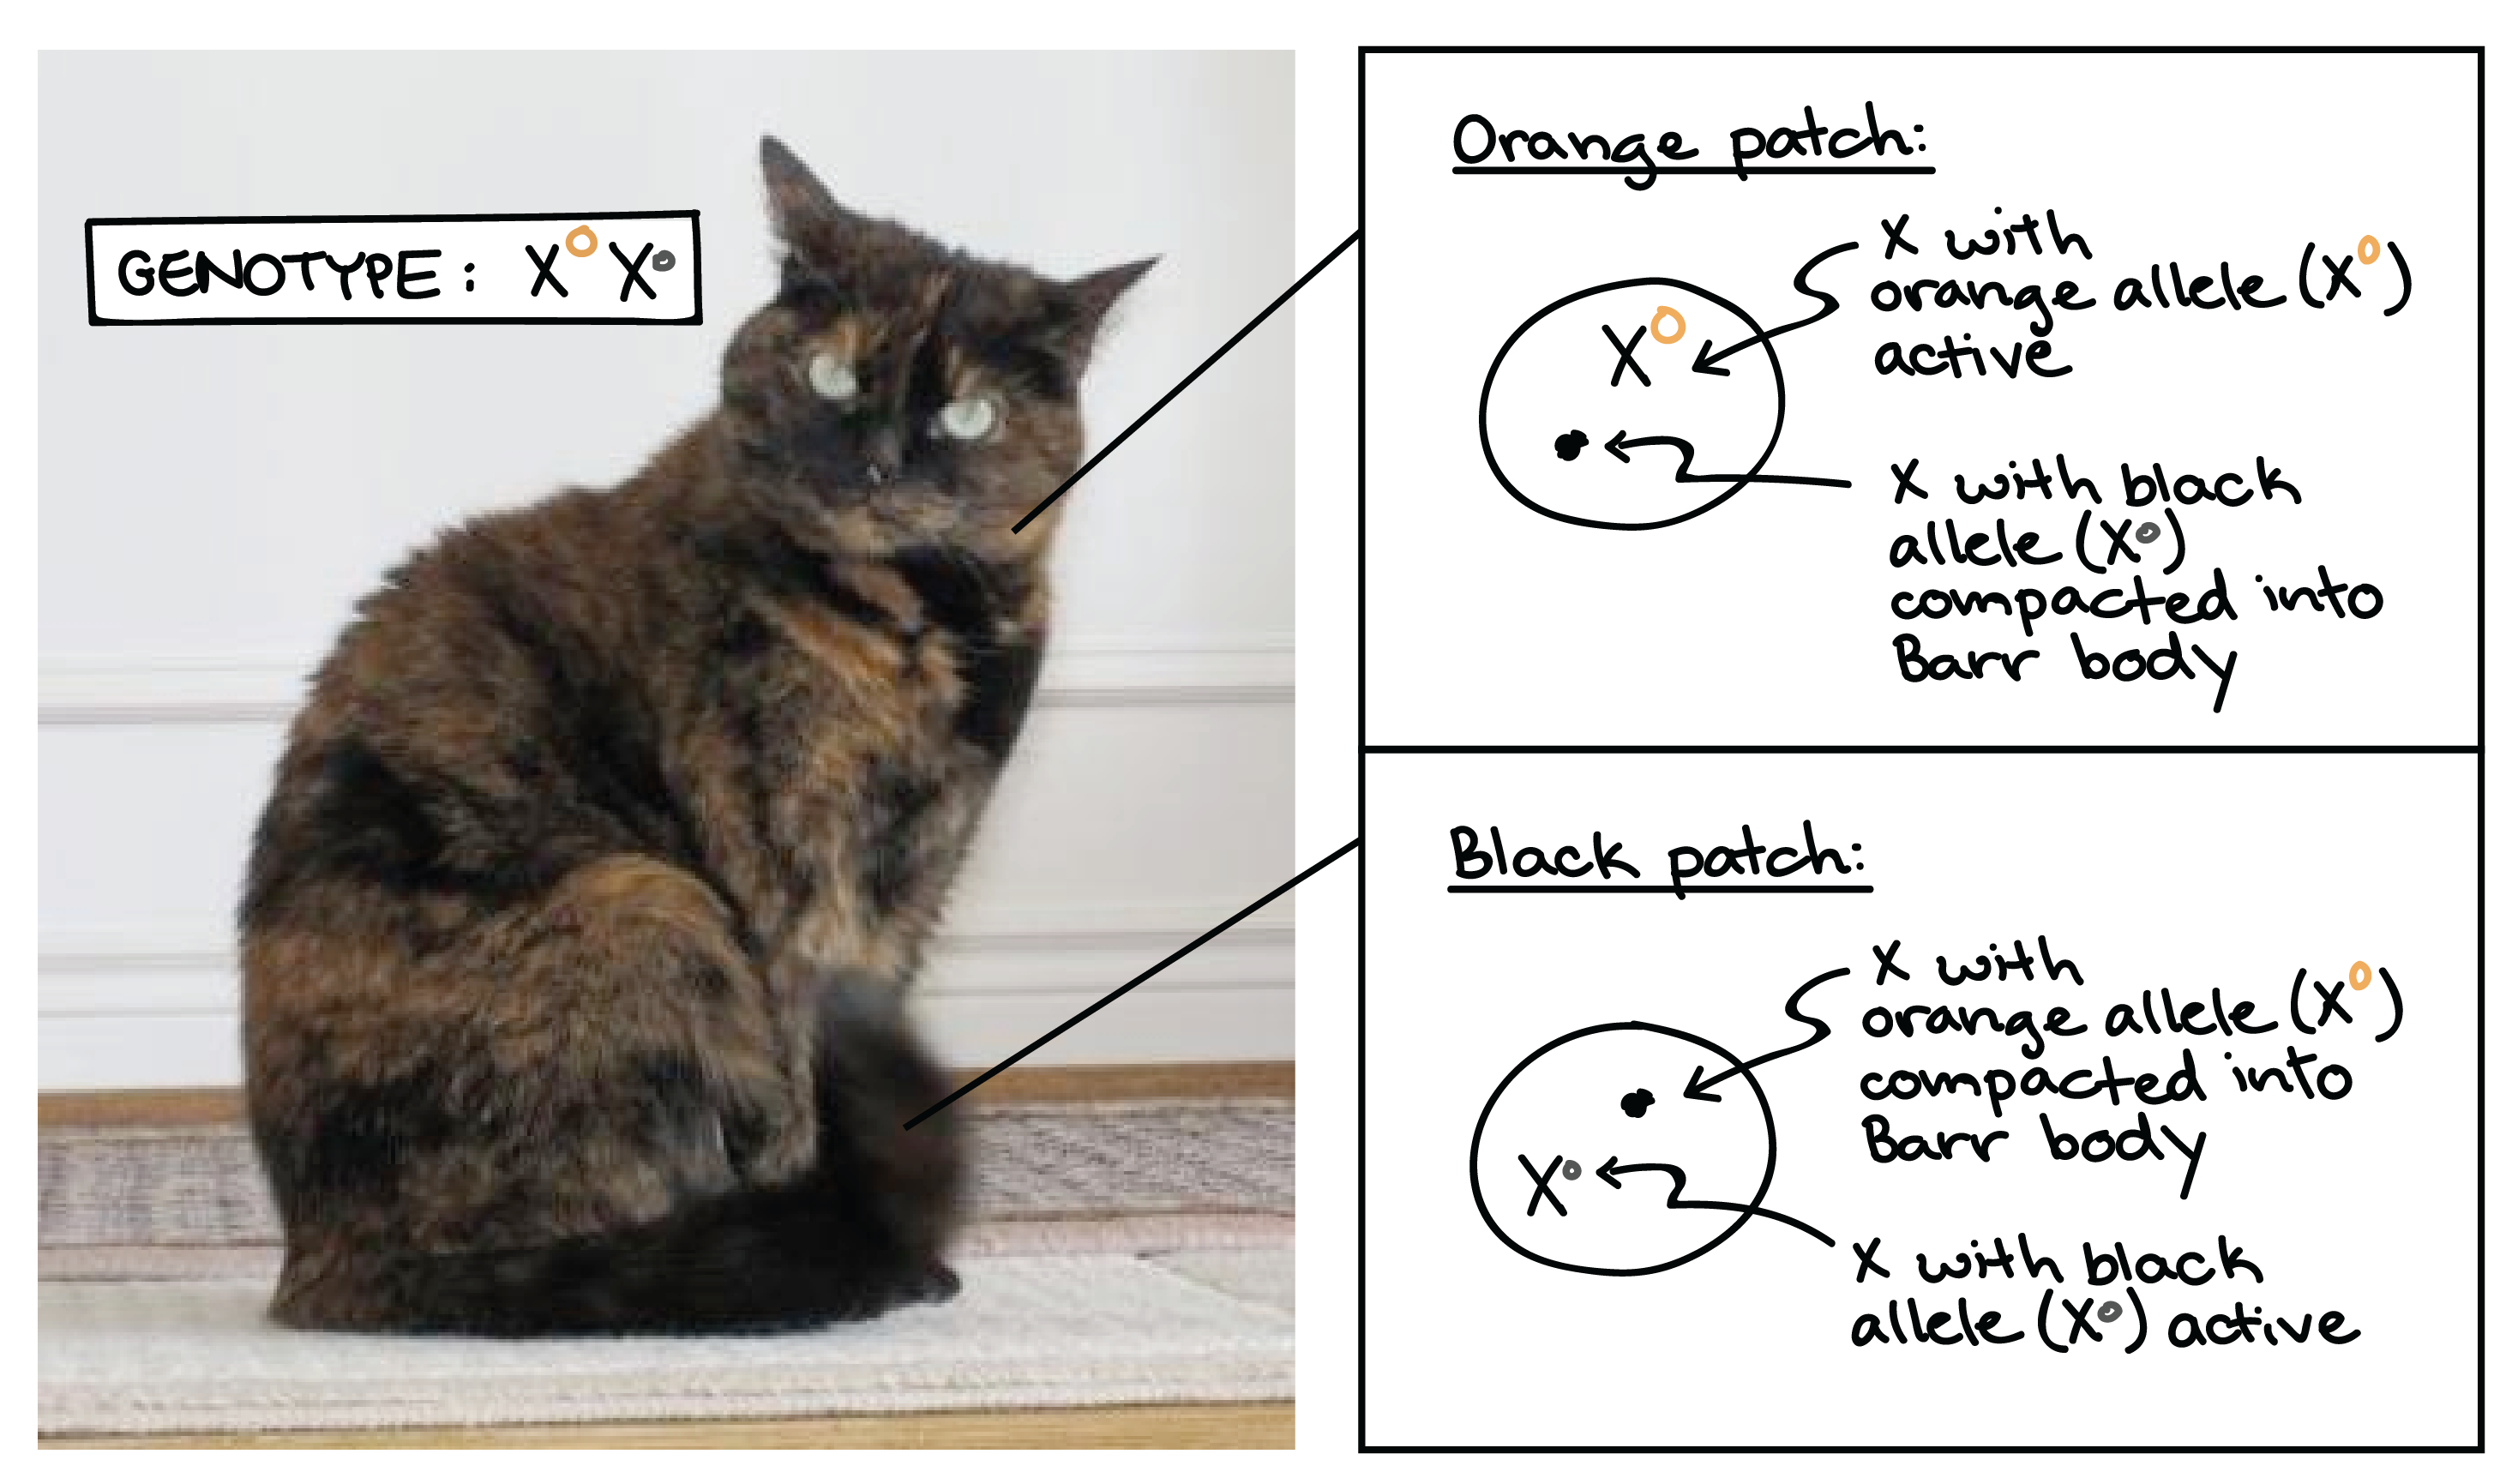 Color of cats fur - Image Of A Tortoiseshell Cat Illustrating The X Inactivation Processes Responsible For The Different Patches Of Color On Its Coat